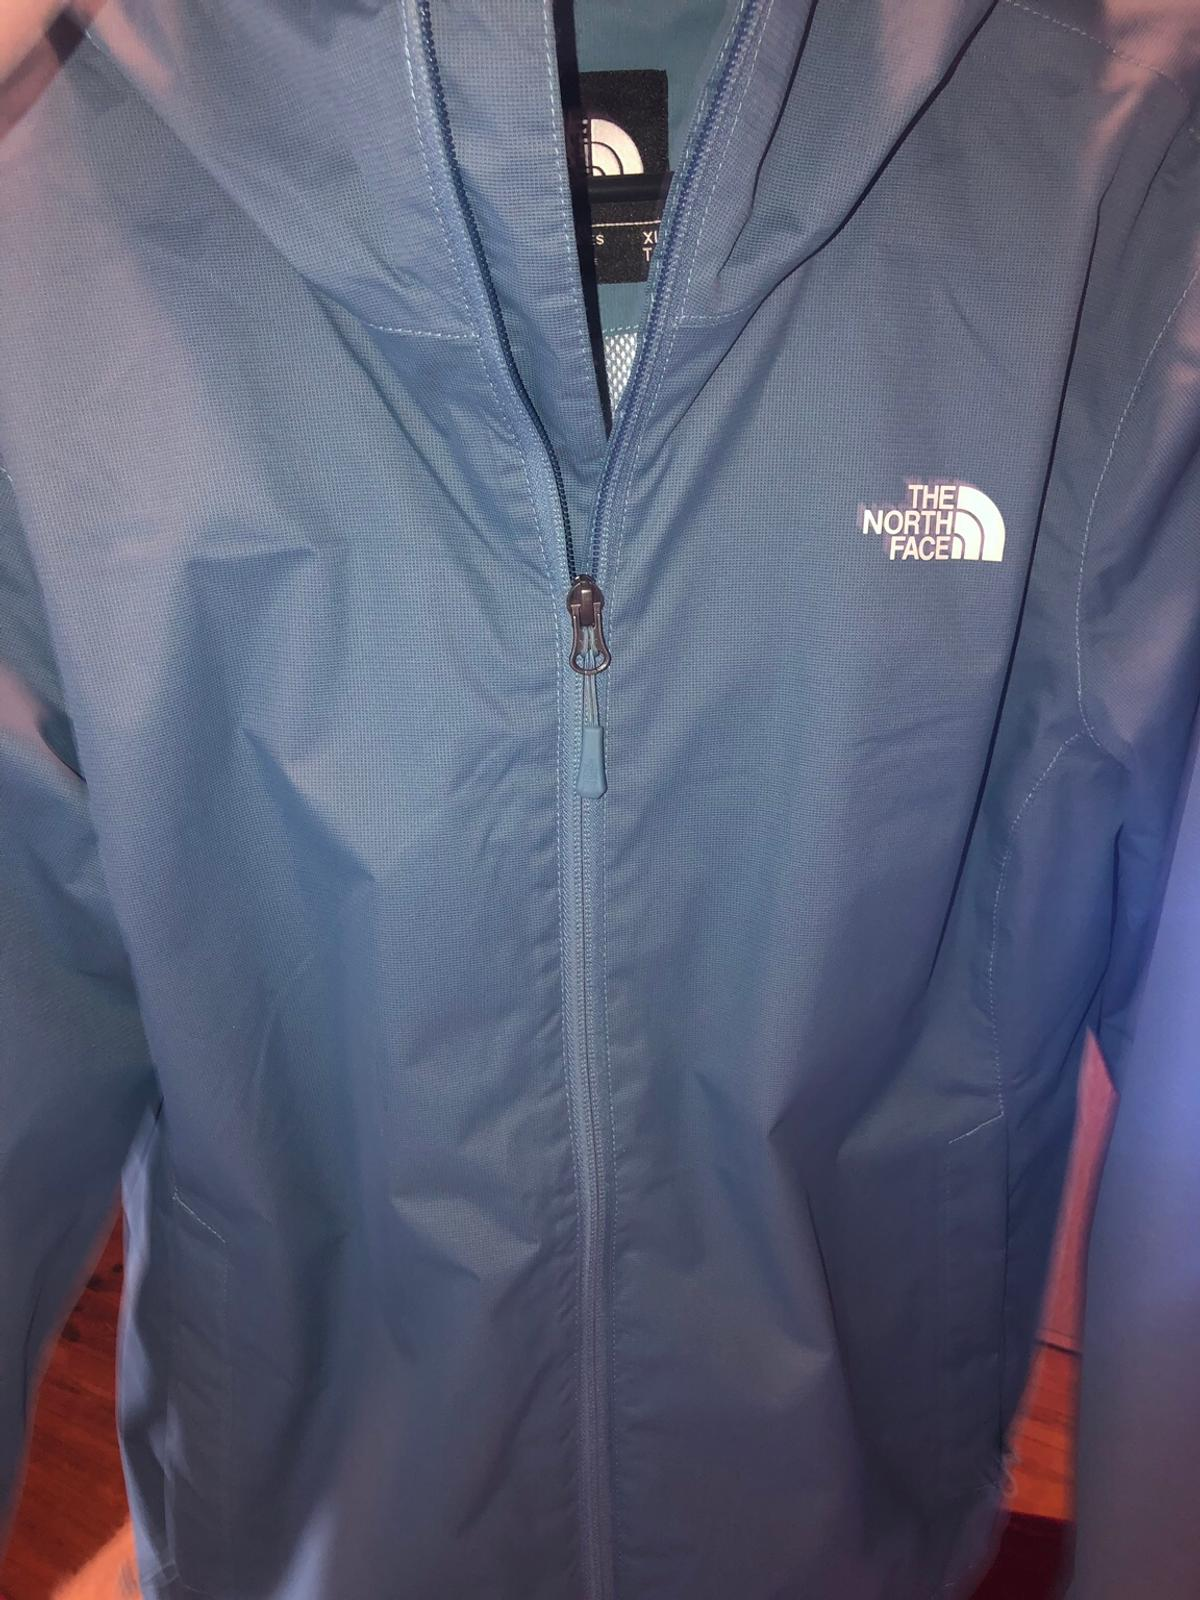 new arrival a3a1a 7f147 THE NORTH FACE QUEST JACKE in 6800 Feldkirch for €55.00 for ...